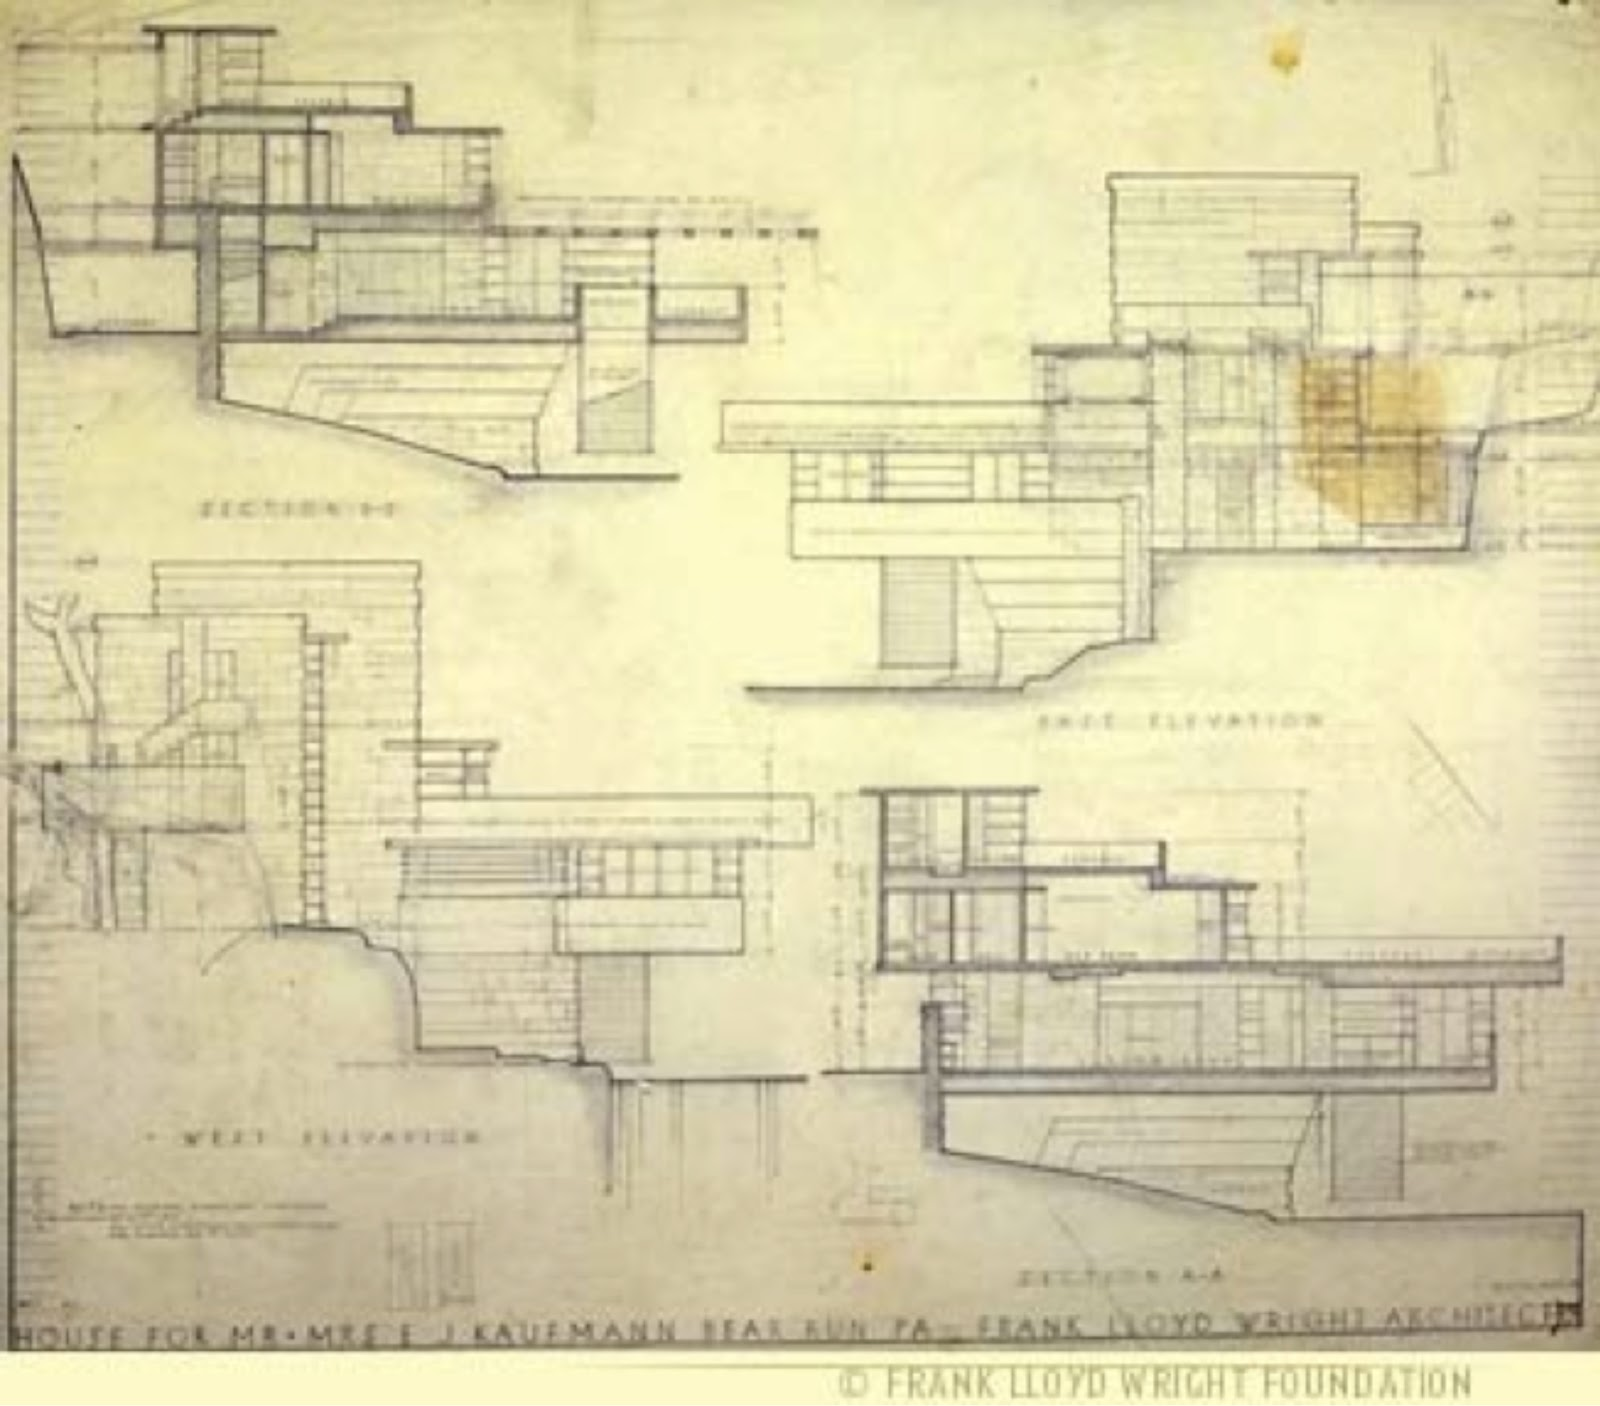 TECTONIC 4: Types of Architectural Regionalism Research